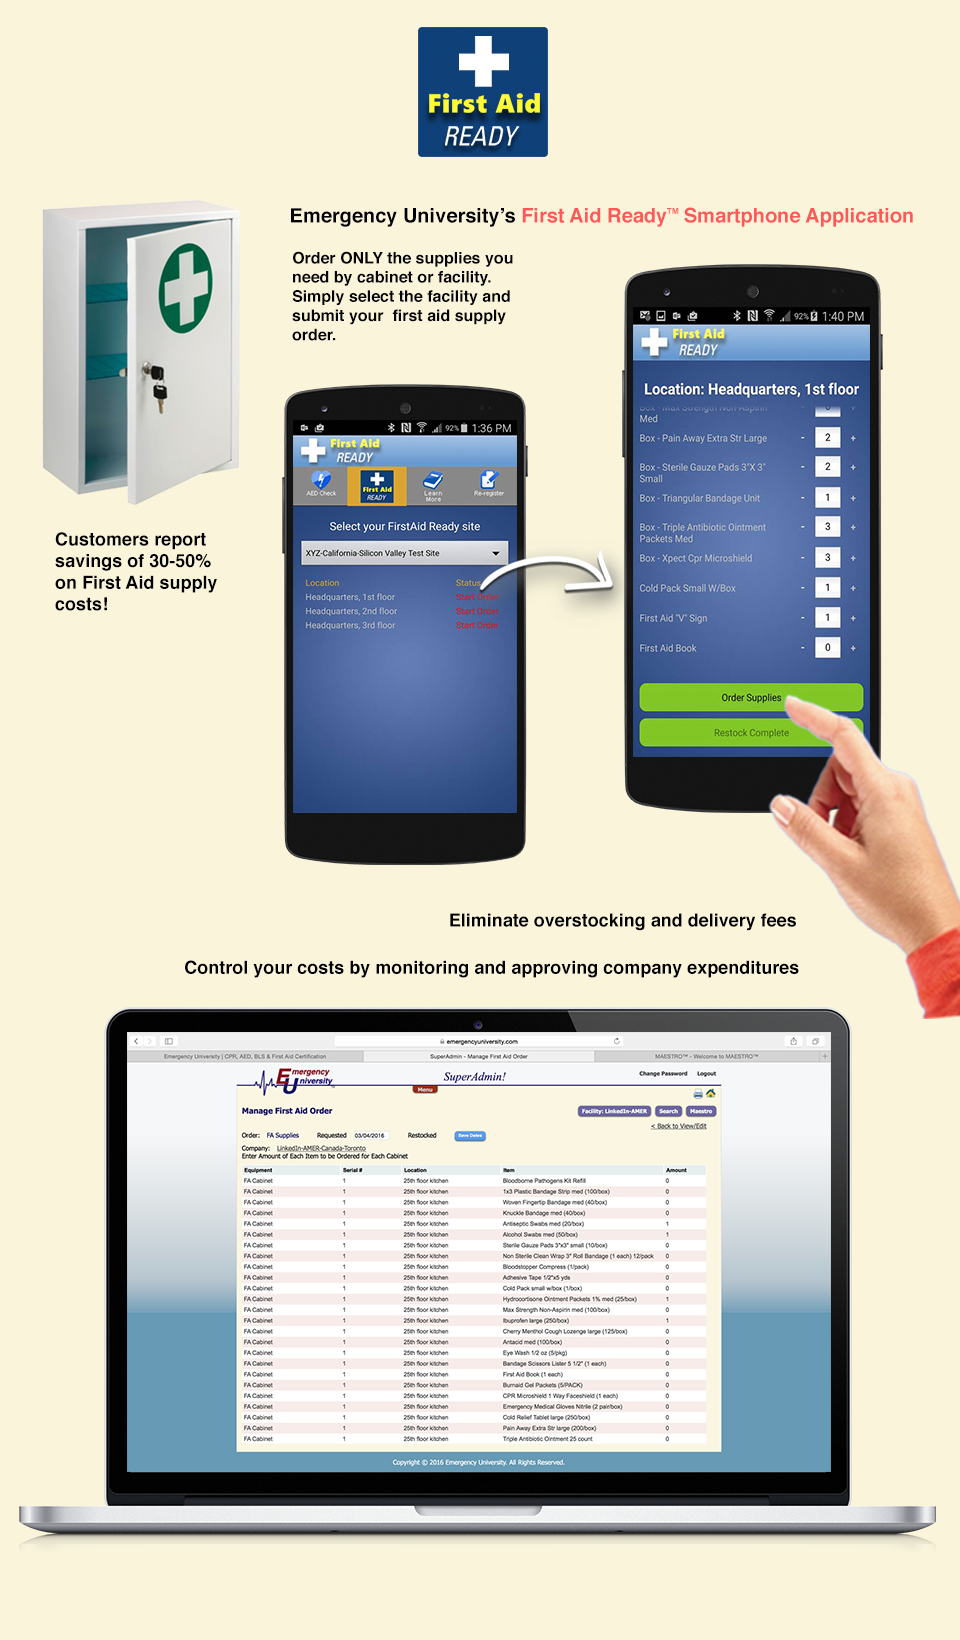 First Aid Ready Smartphone Application Page Layout Design